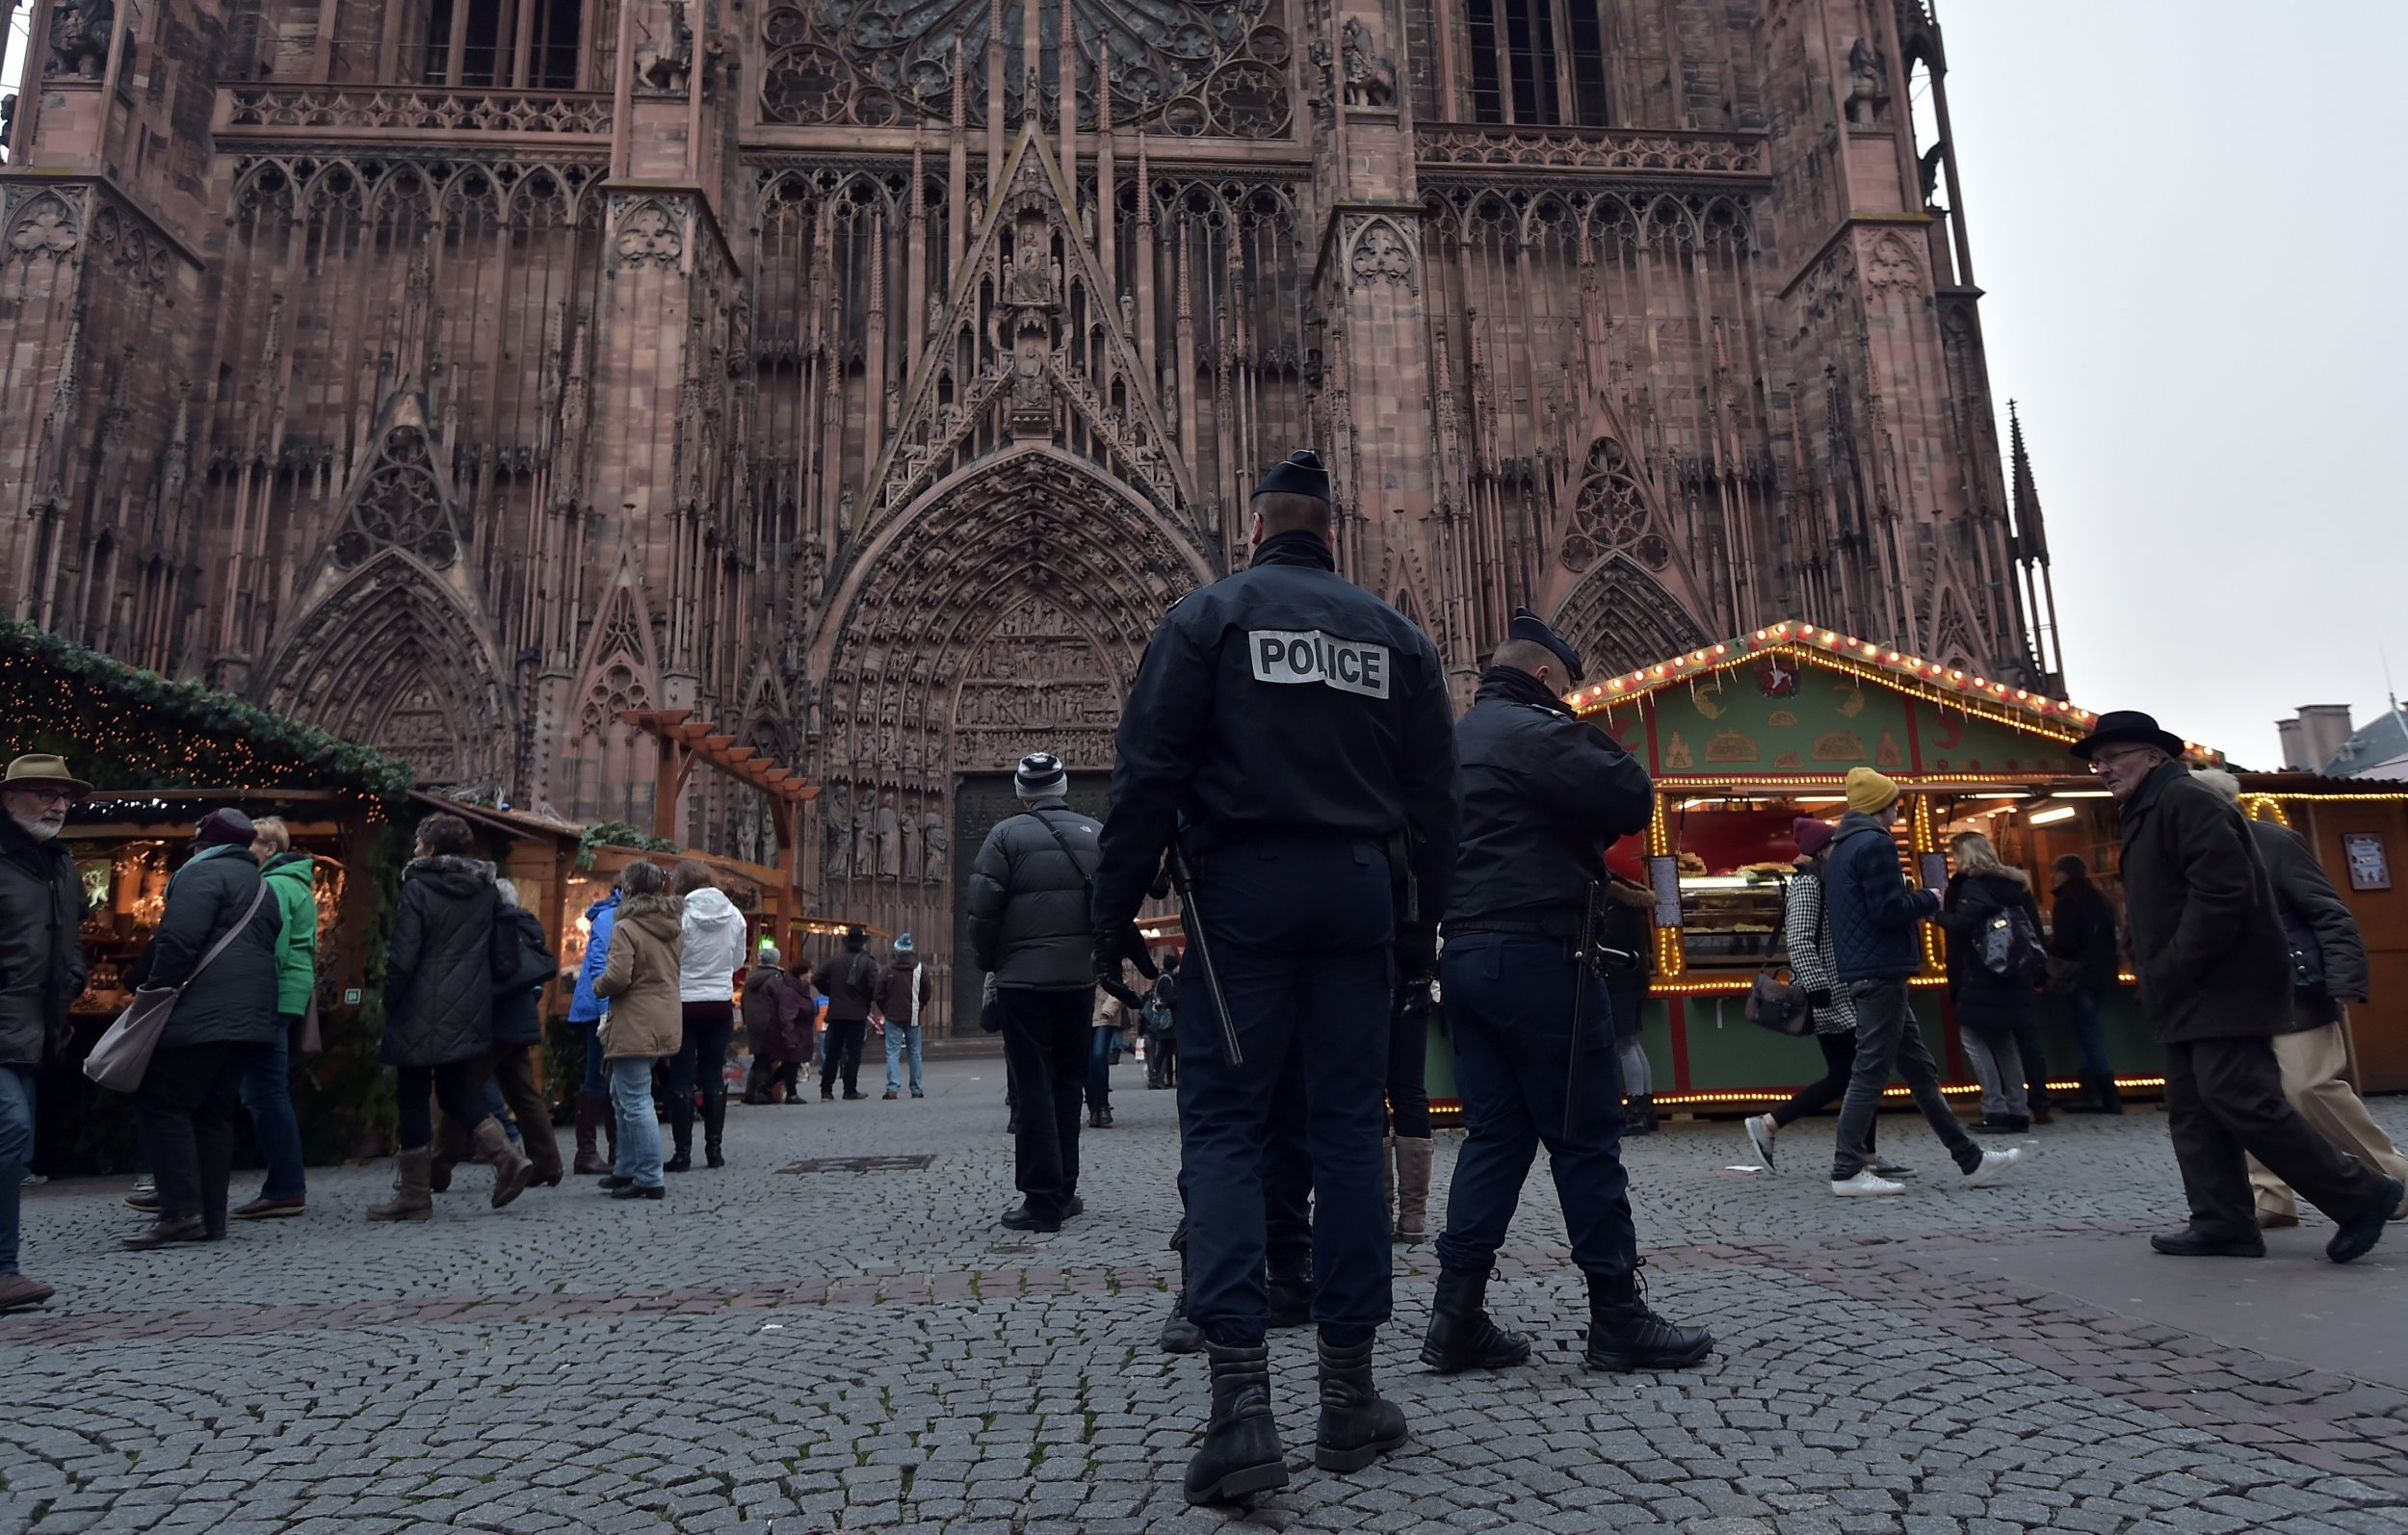 French police in Strasbourg